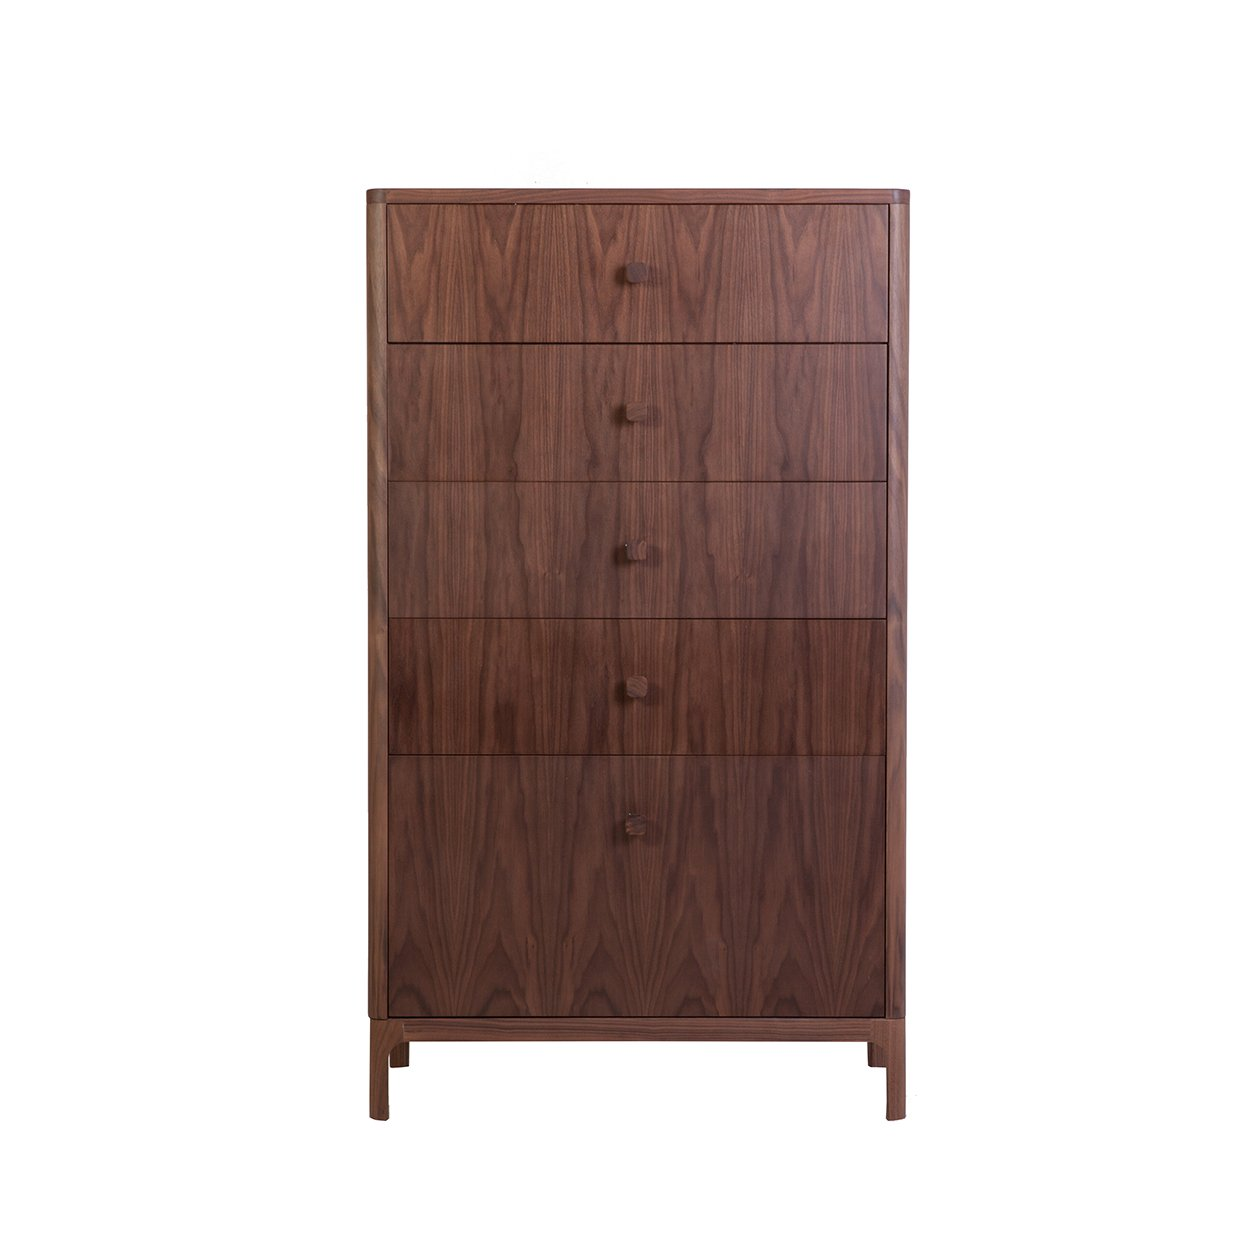 [FES2226WALNUT] Bundaberg Chest of Drawers